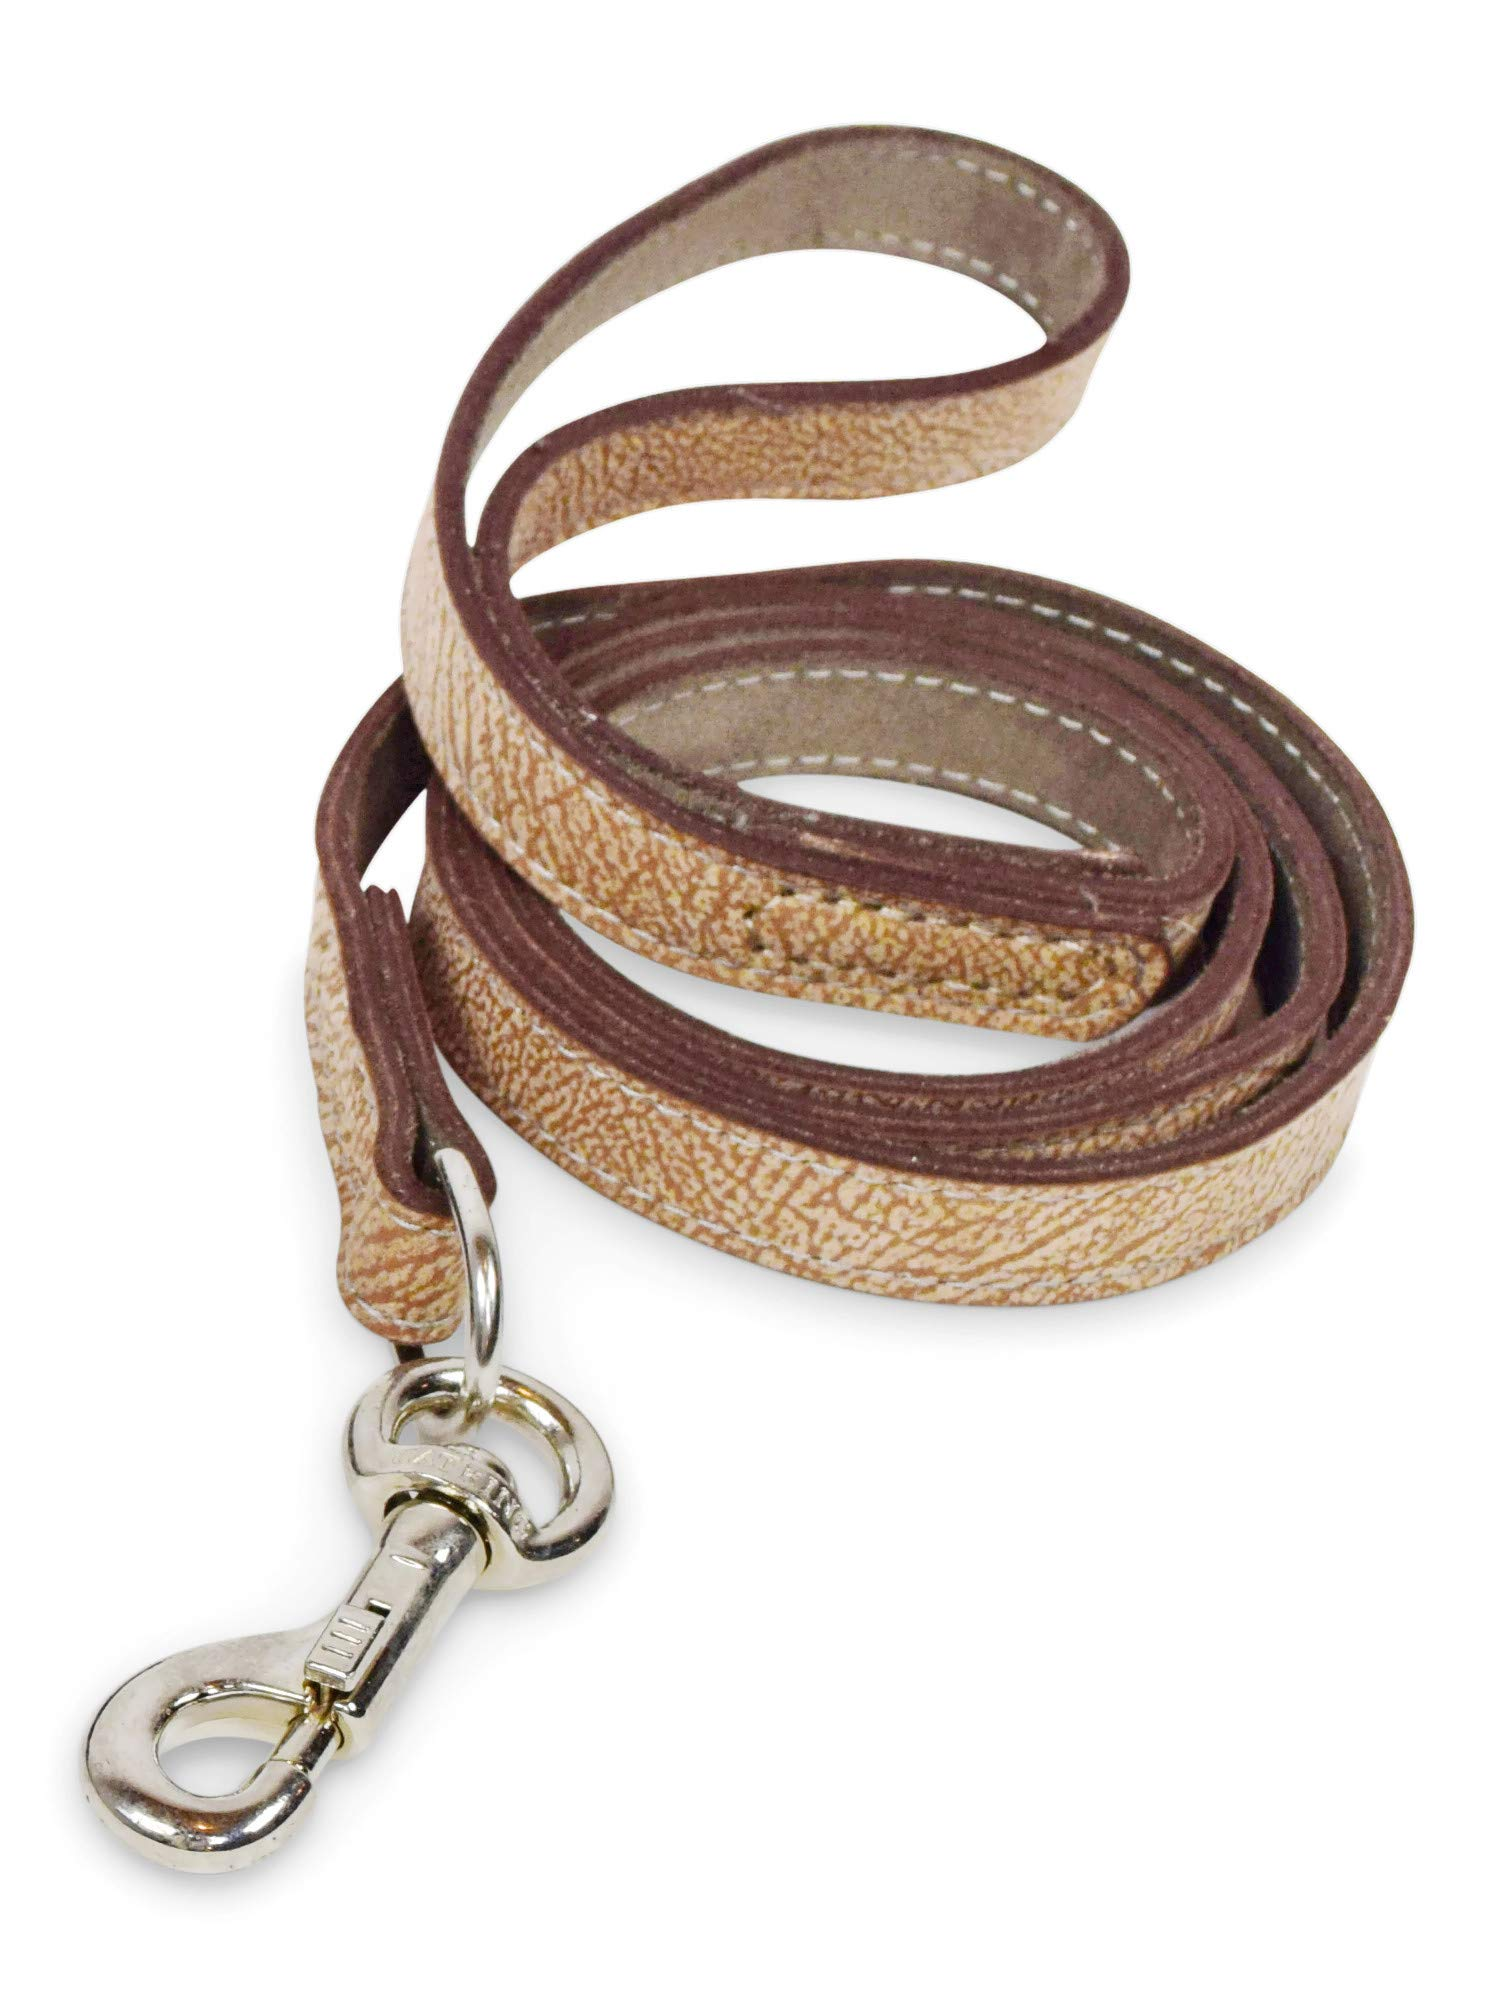 Mighty Paw Leather Dog Leash, Super Soft Distressed Leather- Premium Quality, Modern Stylish Look by Mighty Paw